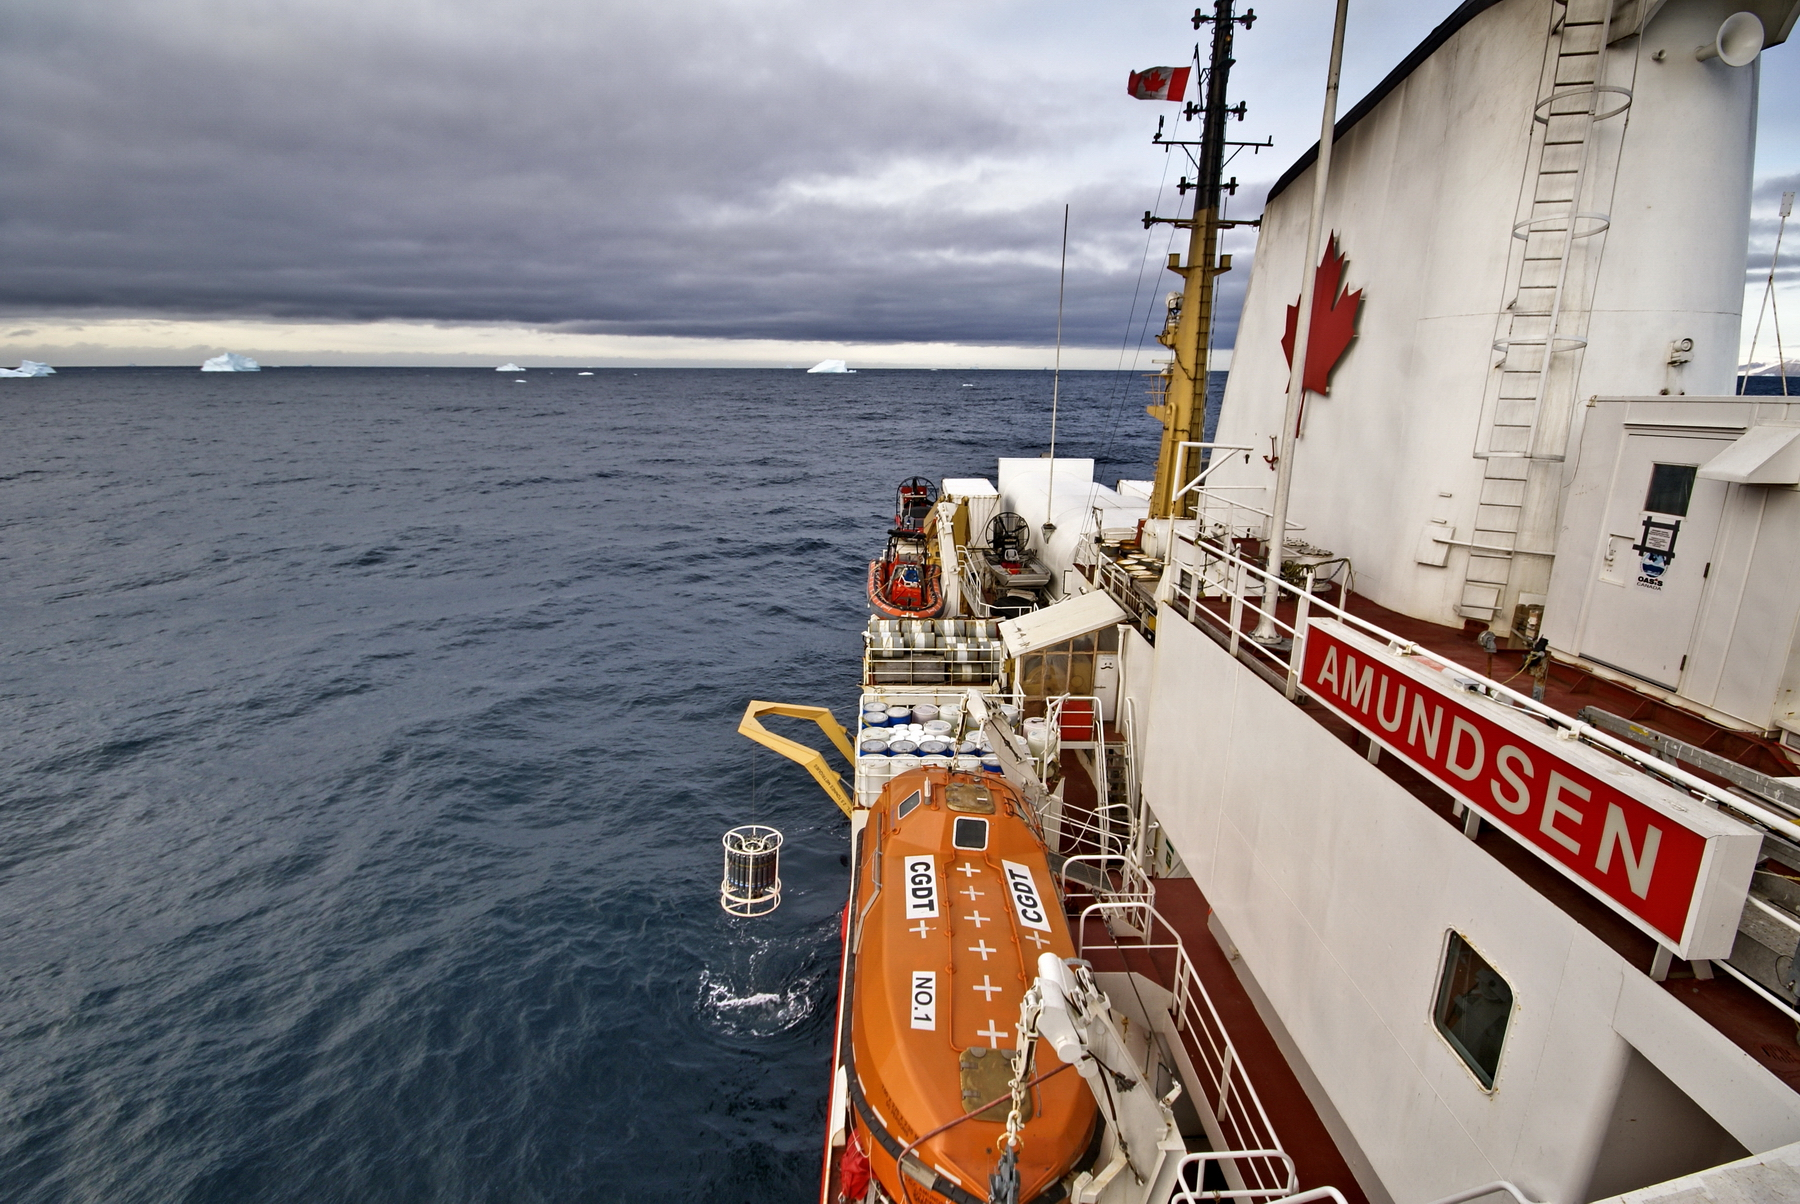 Launch of the 17th Scientific Expedition onboard the CCGS Amundsen